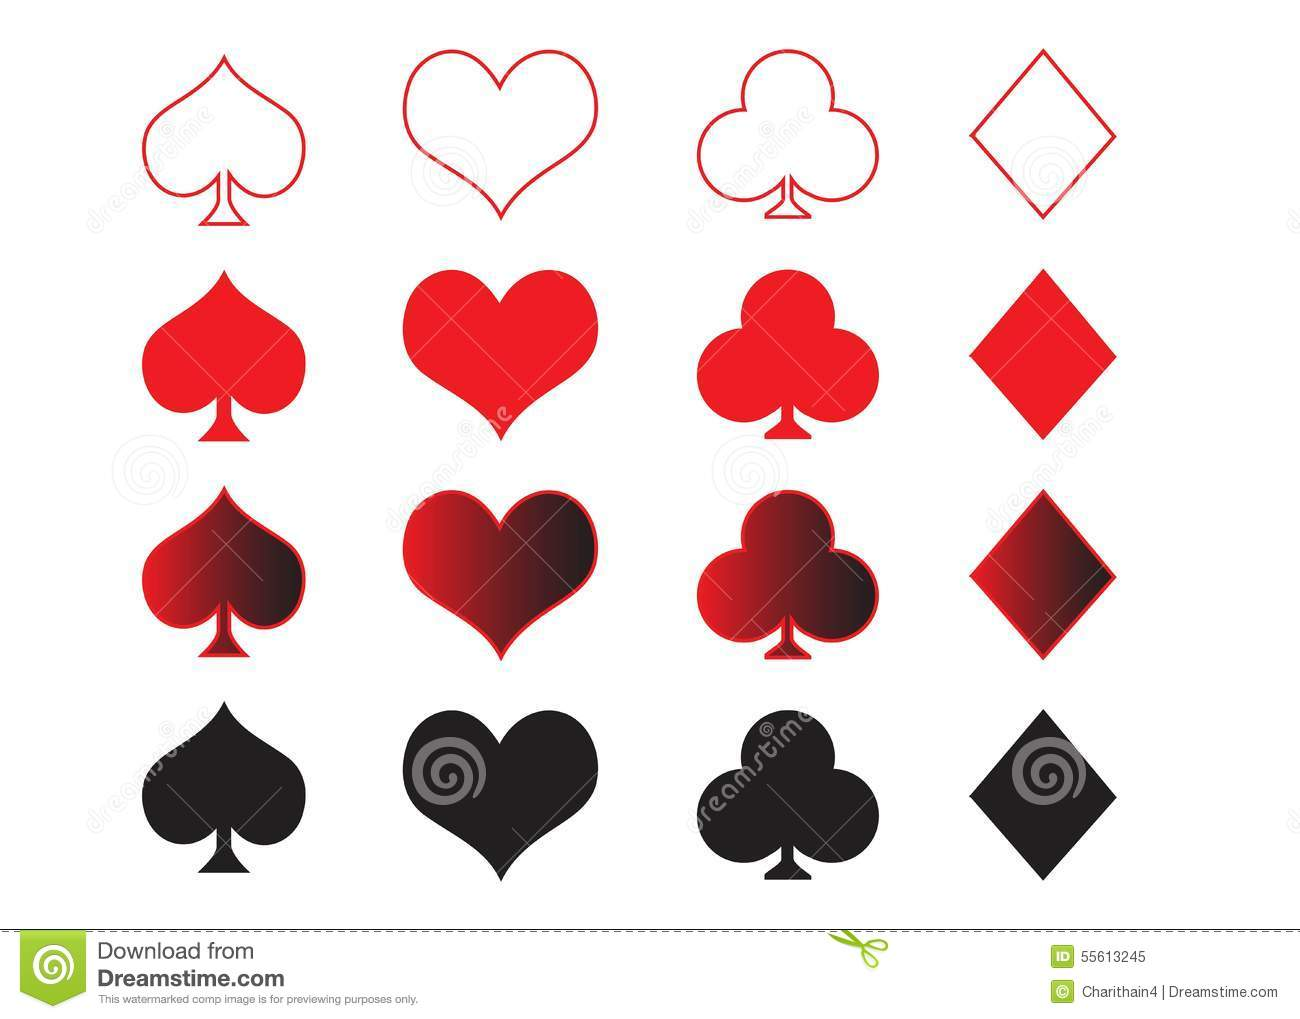 Playing Cards Symbols Stock Vector - Image: 55613245